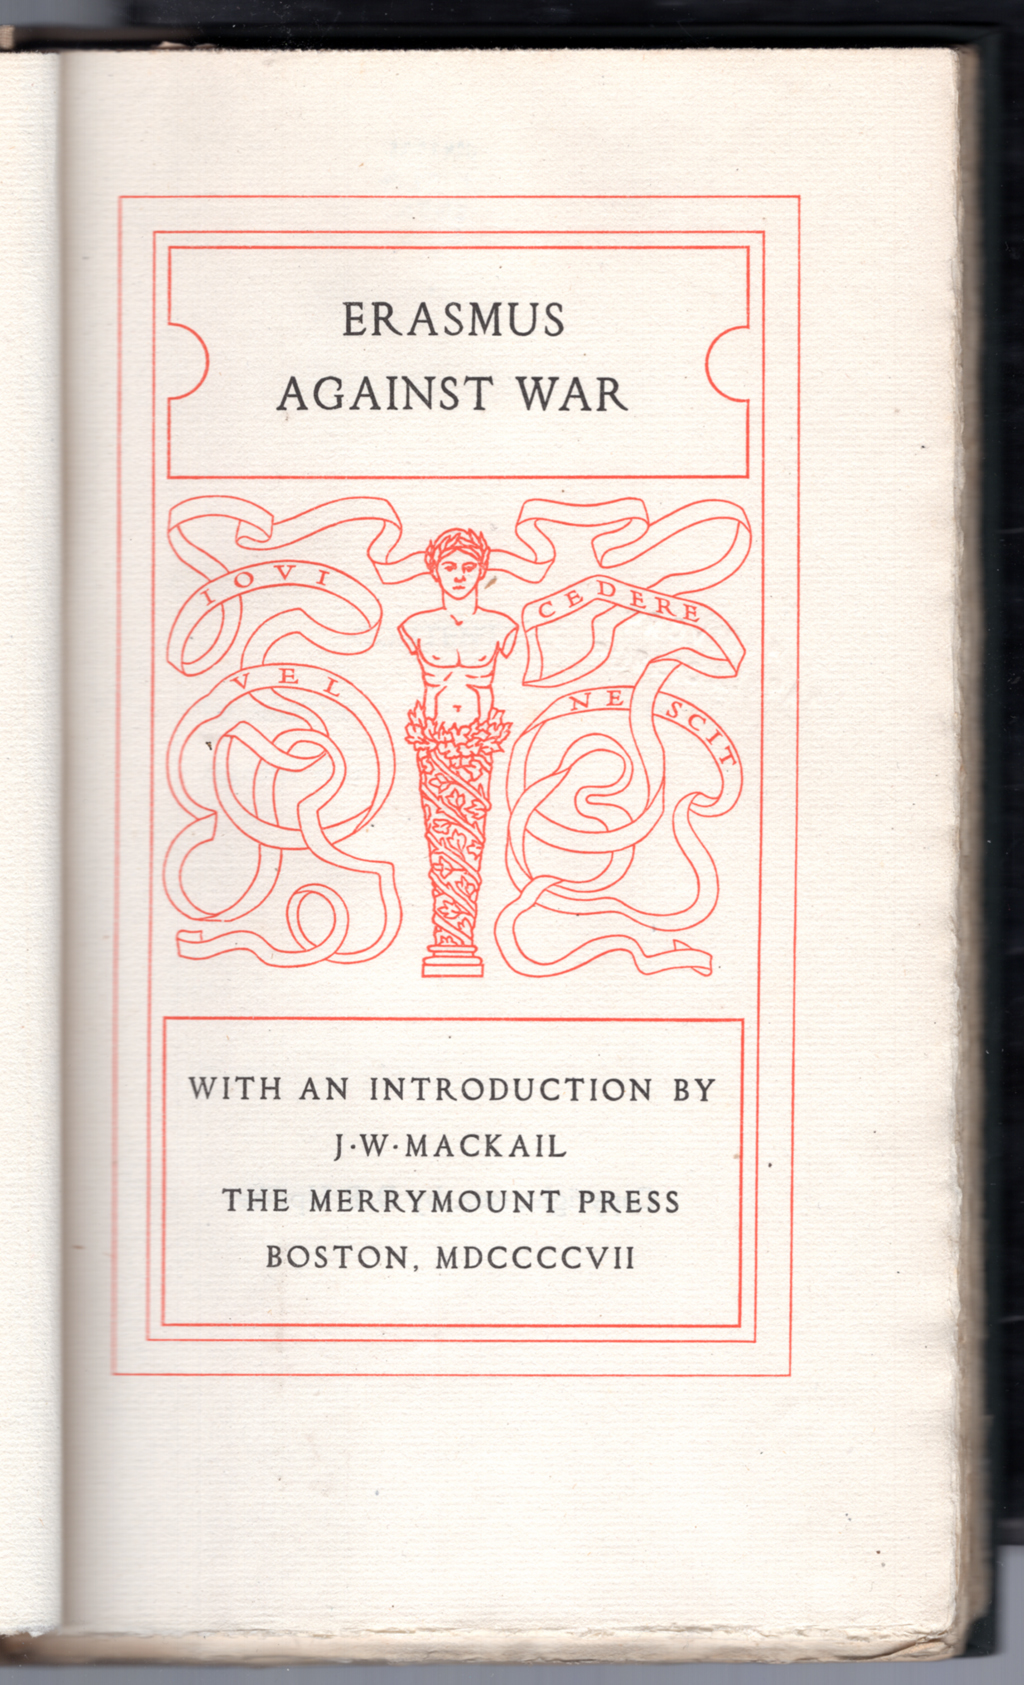 Title page of Against War by Erasmus (Boston: The Merrymount Press, 1907). Frame by W.A. Dwiggins.